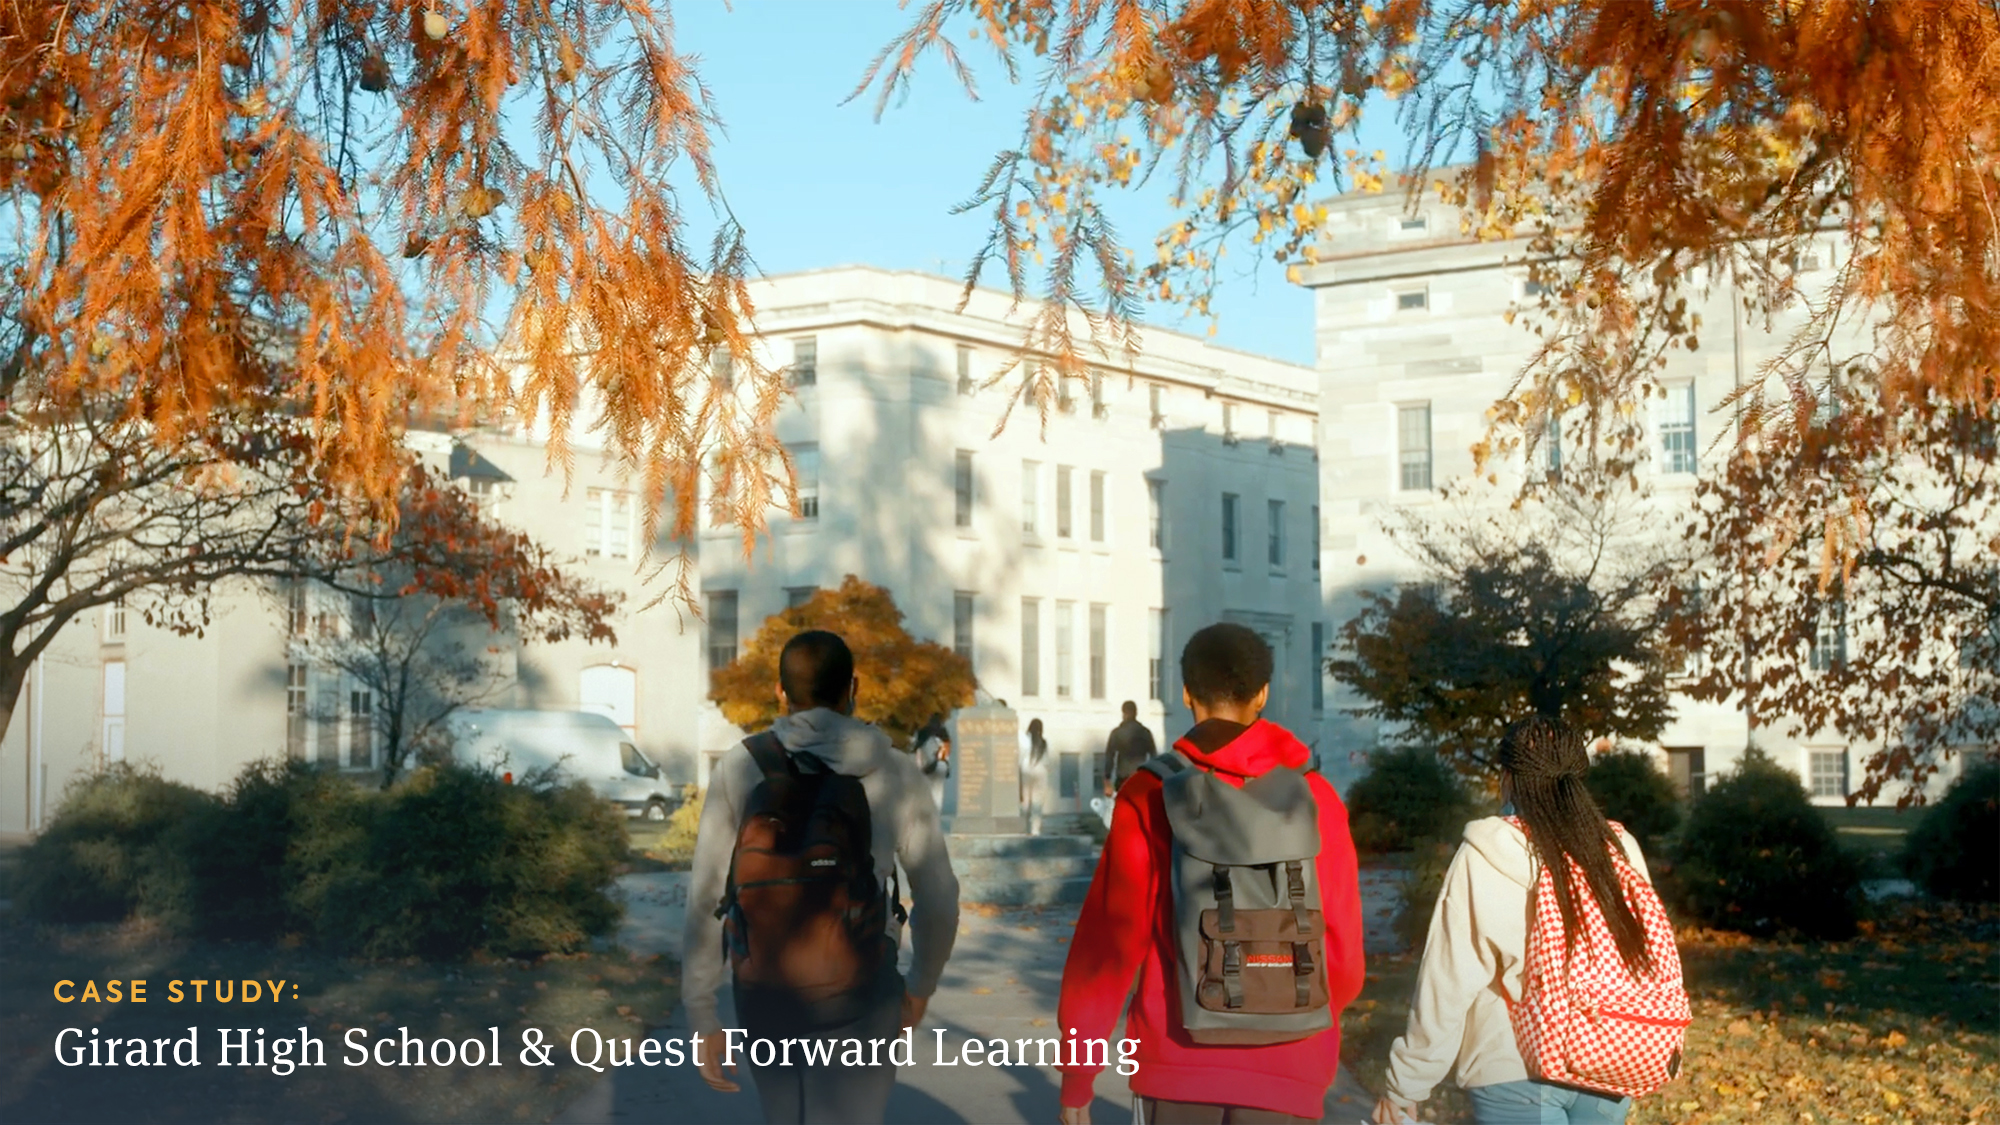 At Girard College High School, Quest Forward Learning has transformed how students and teachers work.